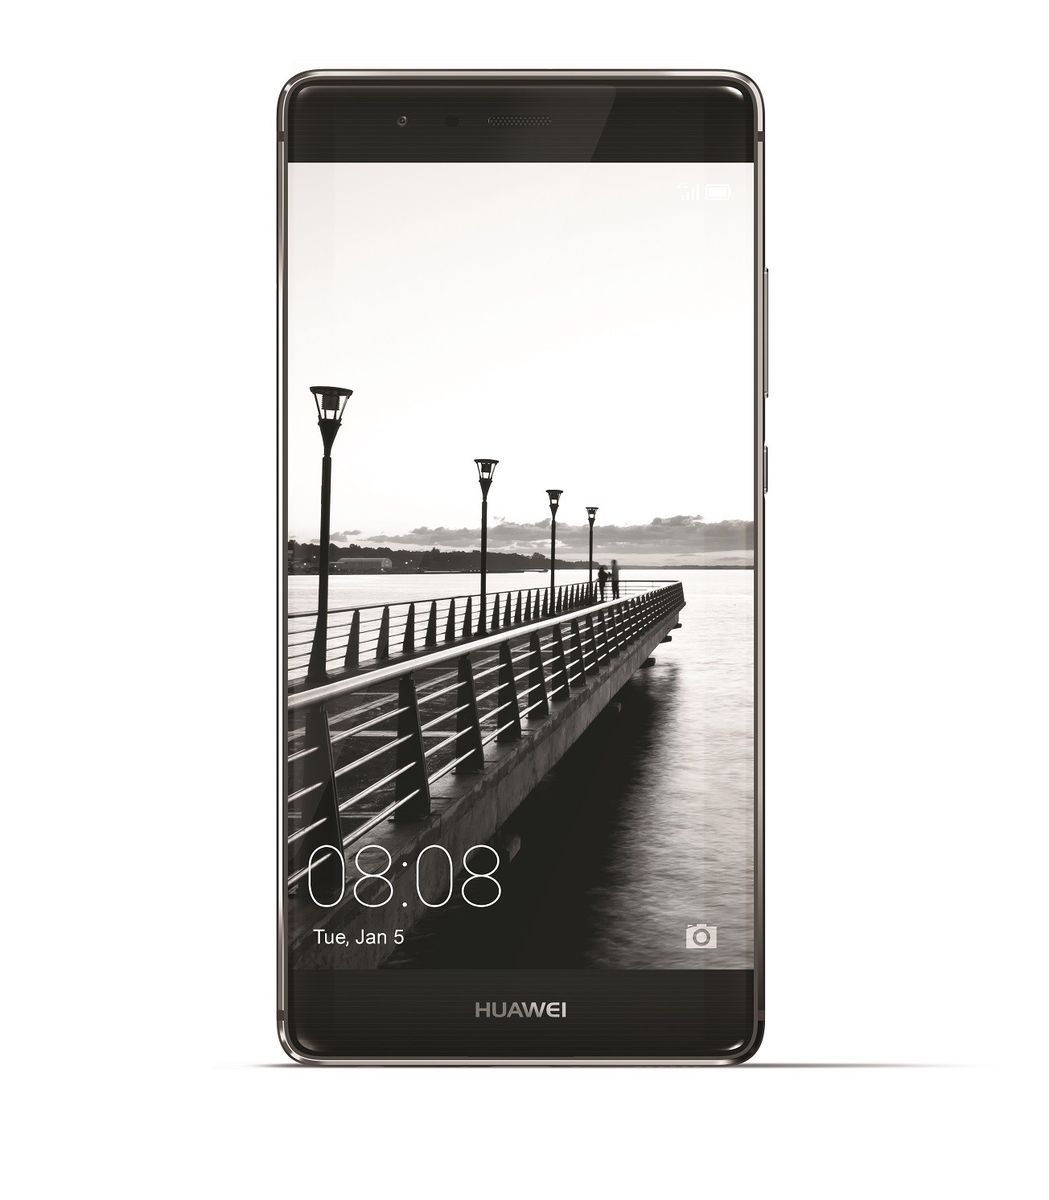 huawei p9 grey. huawei p9 32gb 3g - titanium grey. loading zoom grey